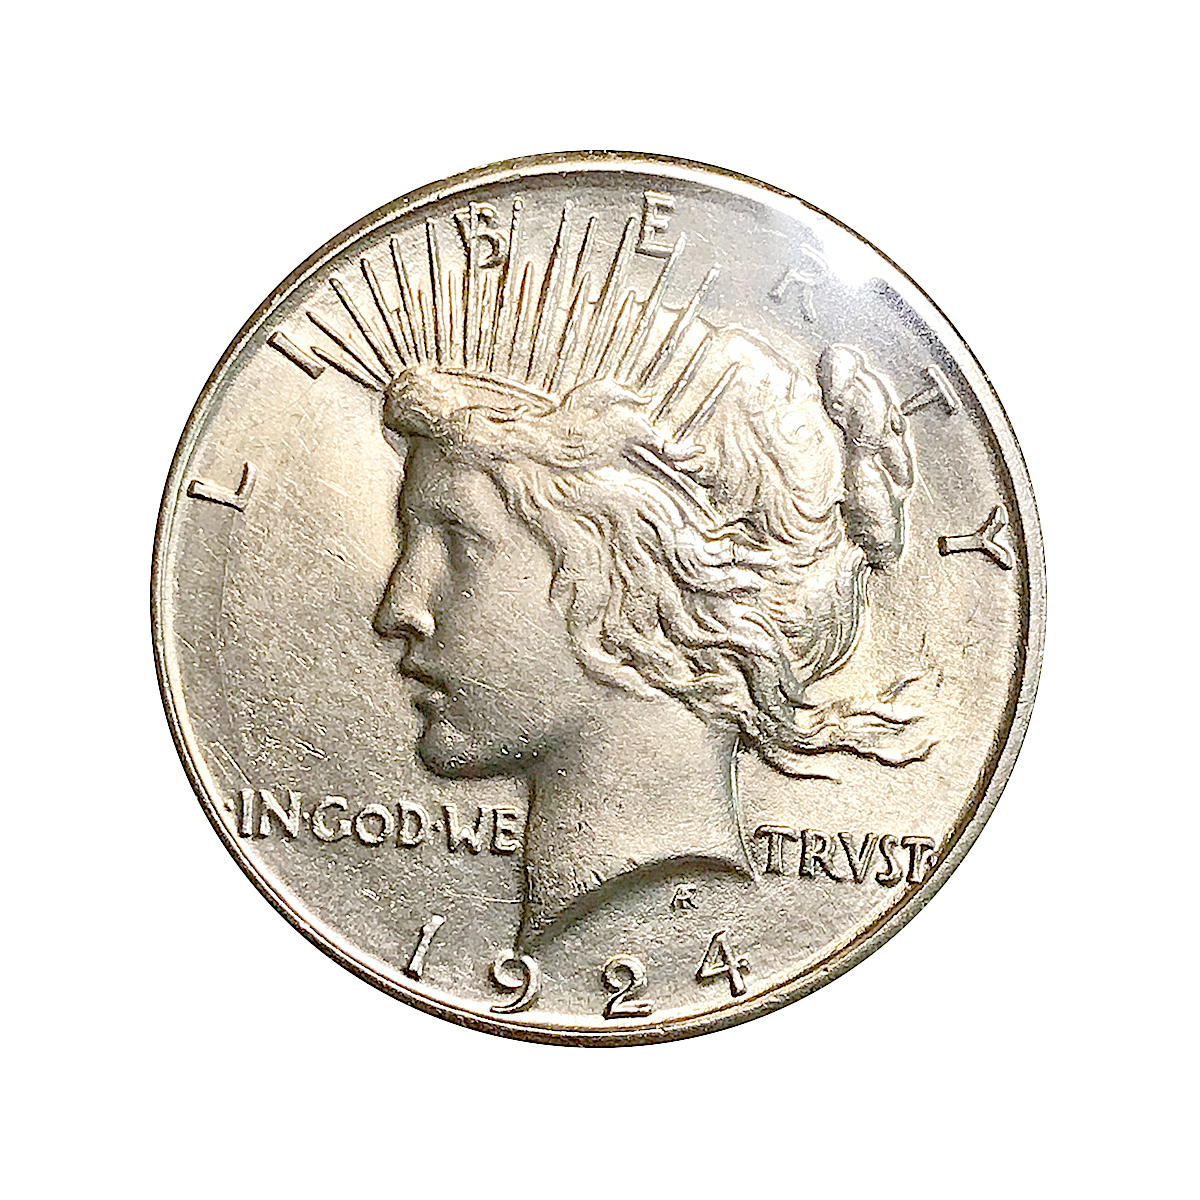 1924 S Peace Silver Dollar - AU / Almost Uncirculated - Better Grade